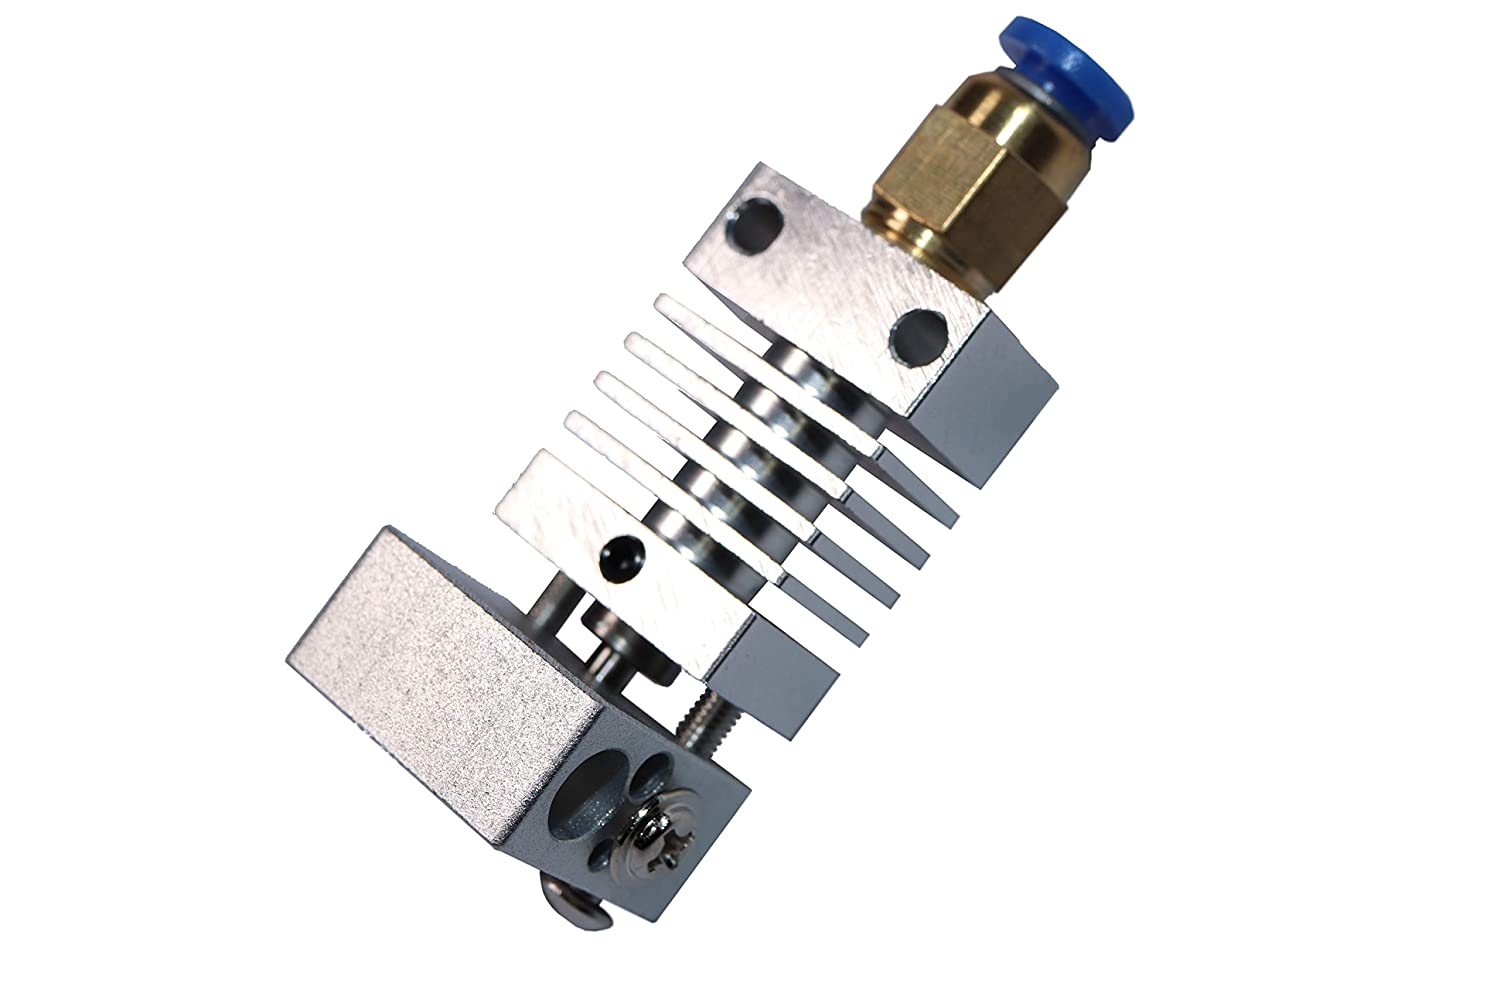 Aluminum Heating Block and Four Steel Nozzles Titanium Heat Sink Authentic Creality All Metal Hotend Complete Upgrade Kit with Capricorn PTFE Bowden Tubing